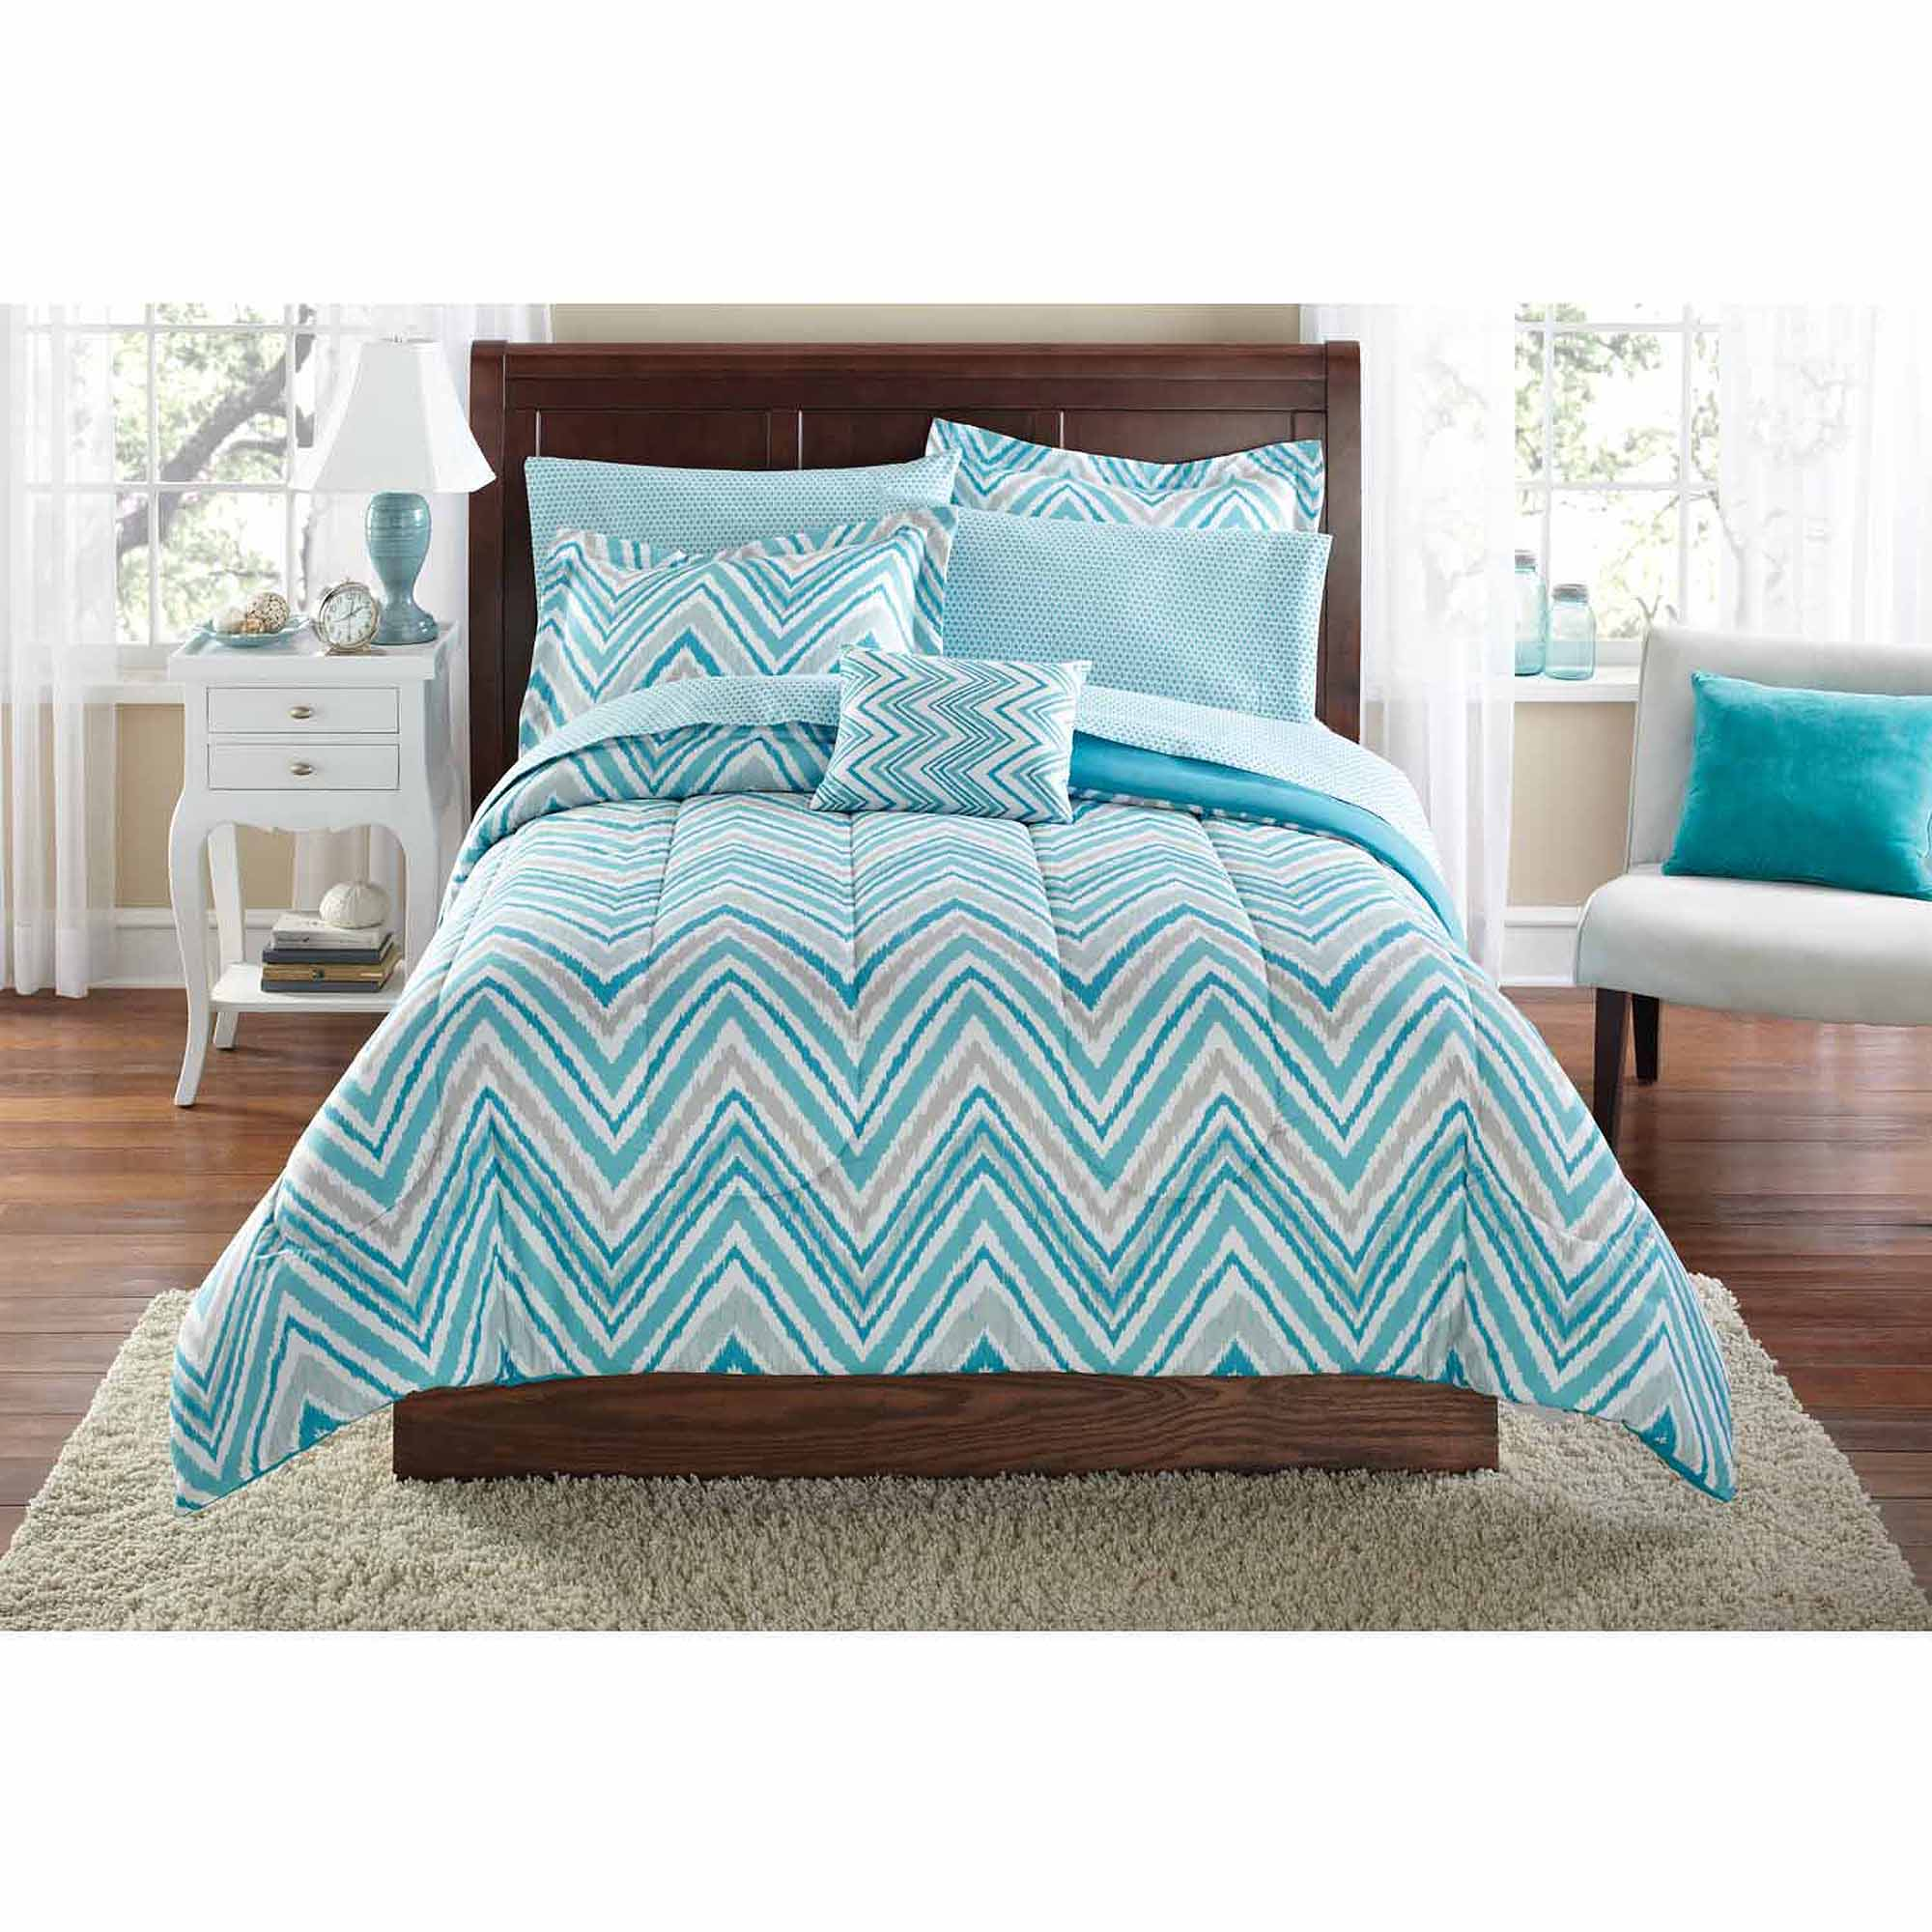 Light blue bedding for girls - Light Blue Bedding For Girls